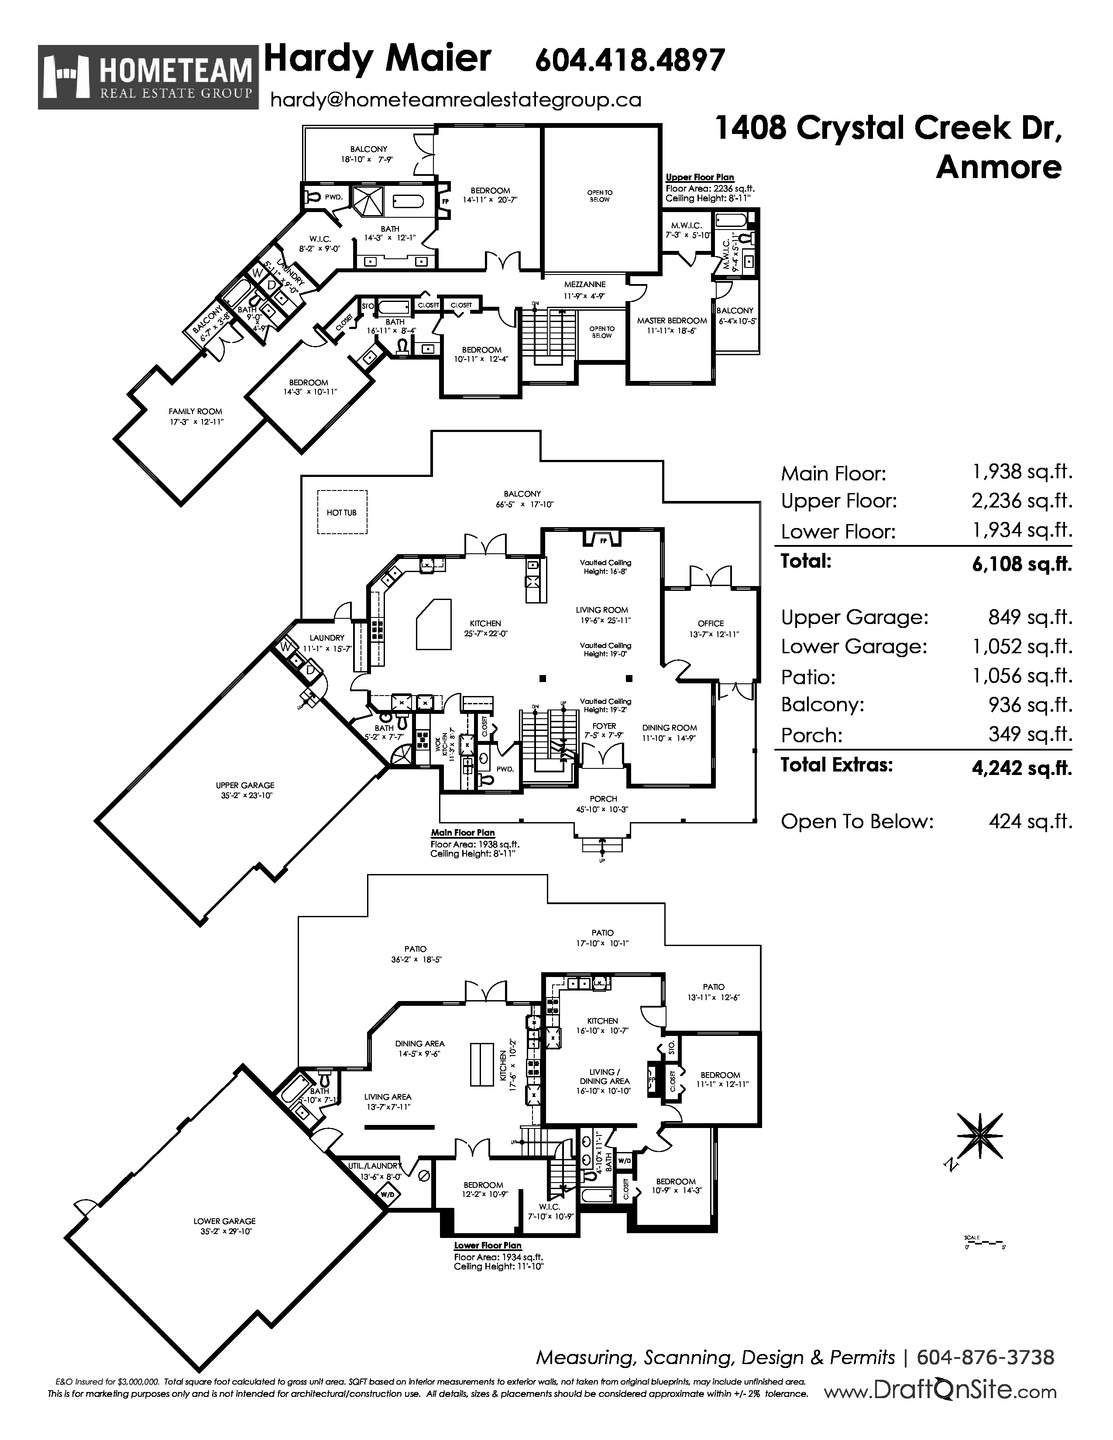 floorplan_branded at 1408 Crystal Creek Drive, Anmore, Port Moody